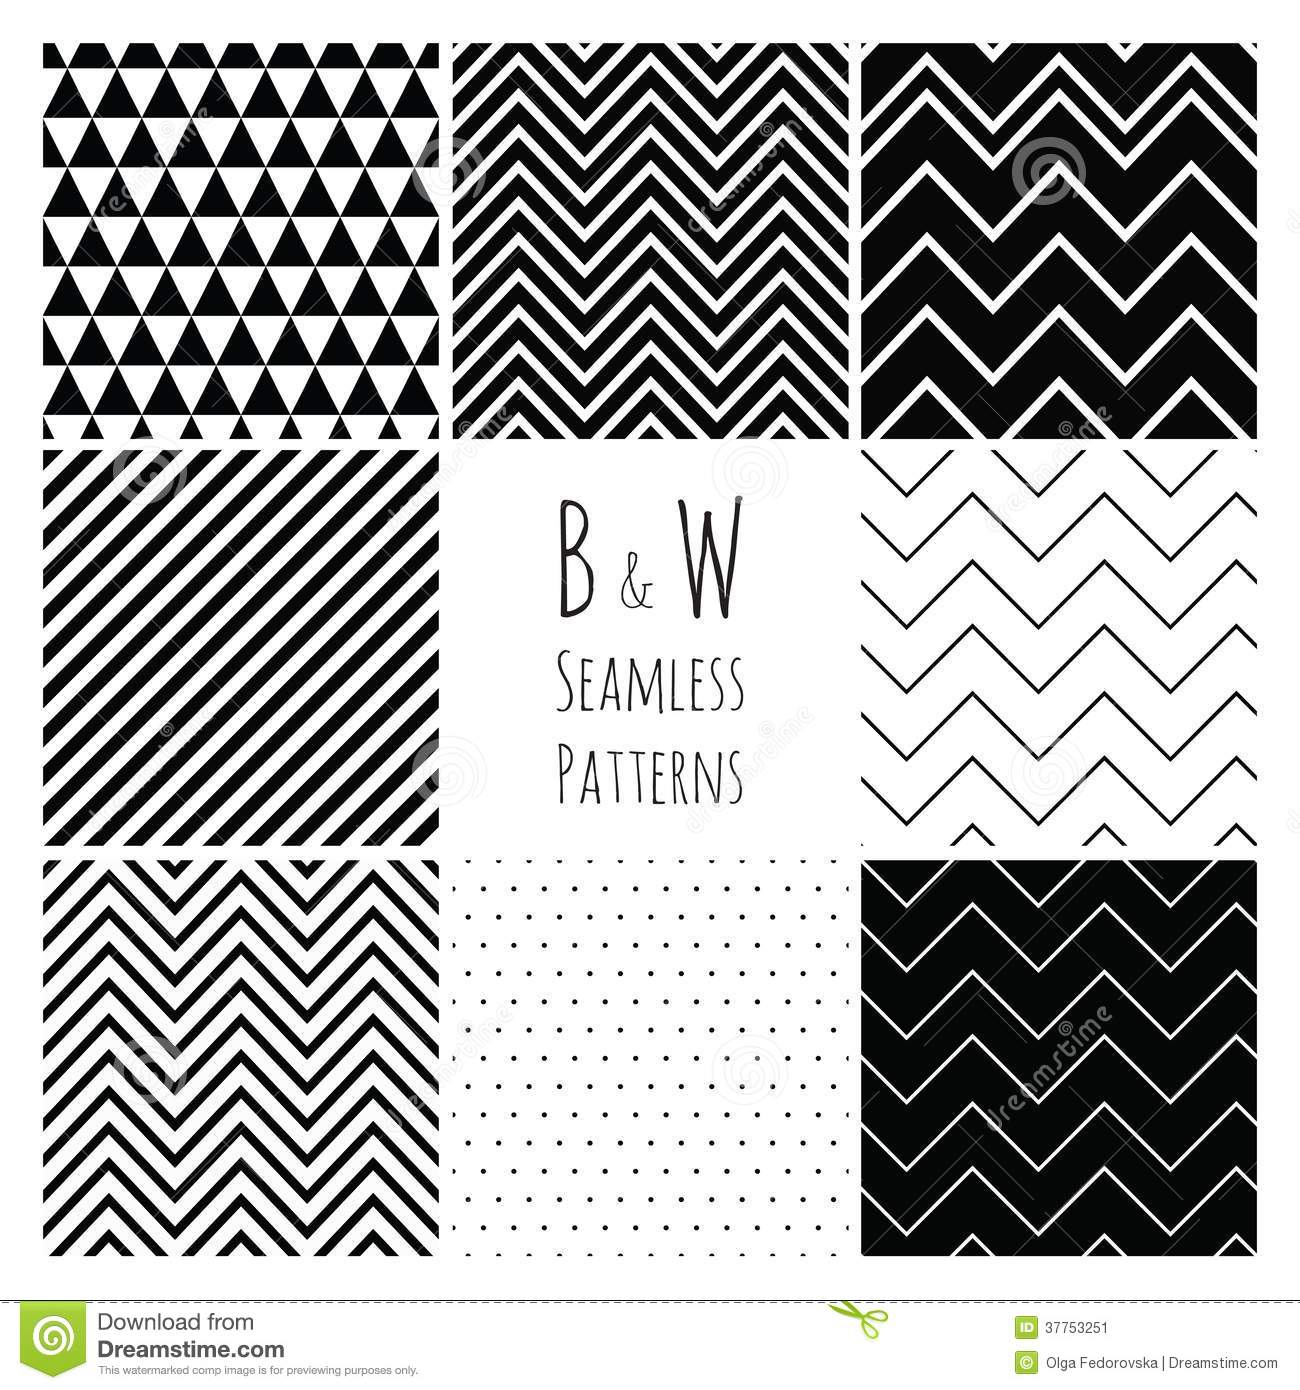 Cute Scrapbook Paper Patterns Seamless Black And Whi...